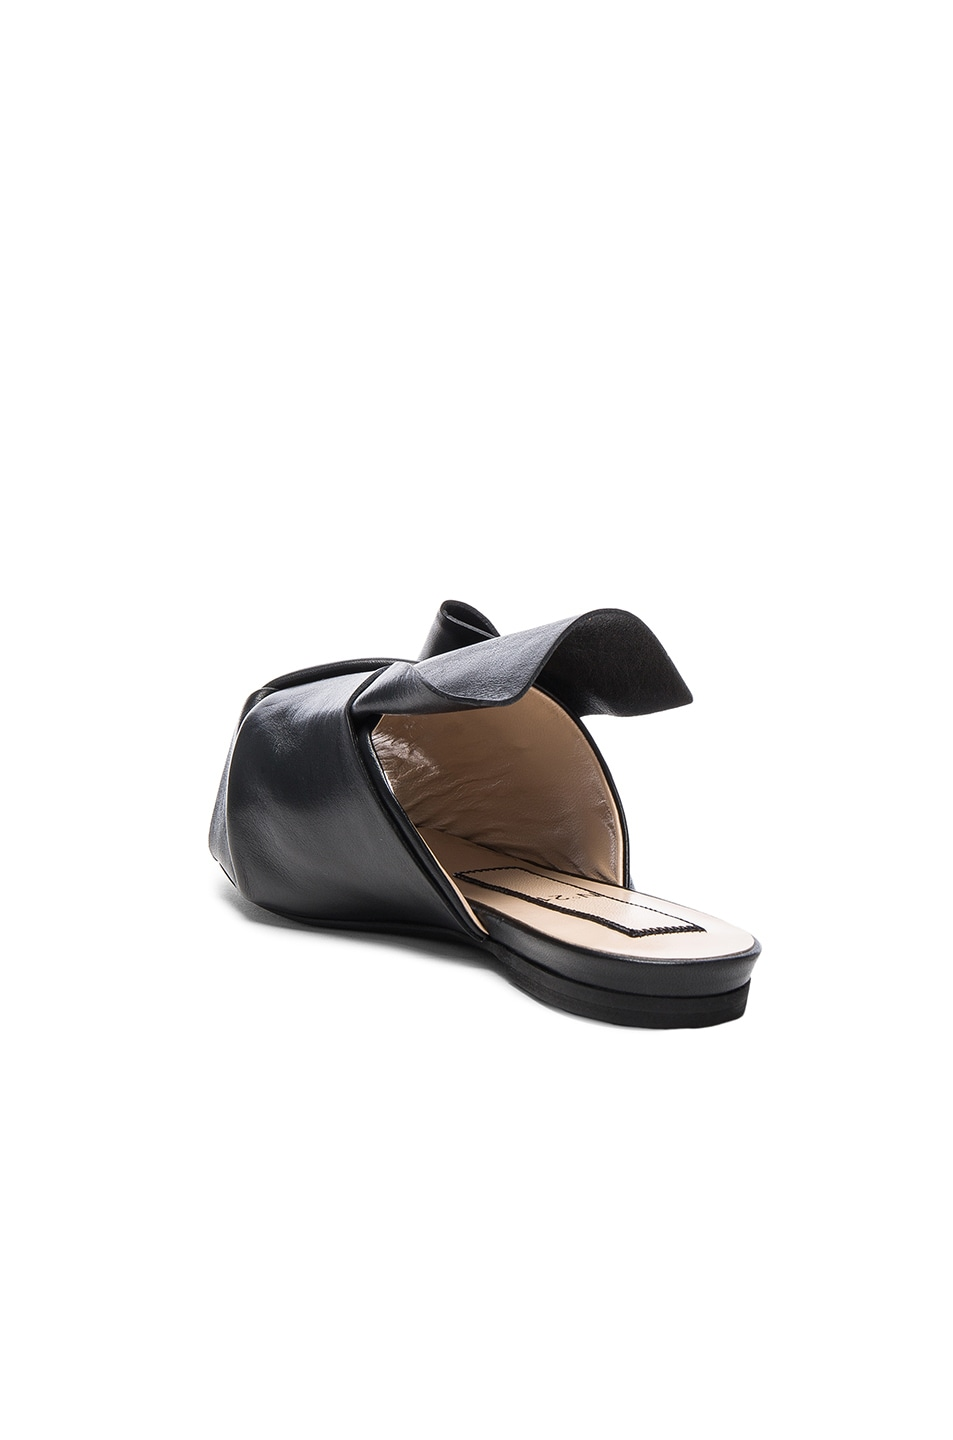 Image 3 of No. 21 Knot Front Leather Sandals in Black Leather